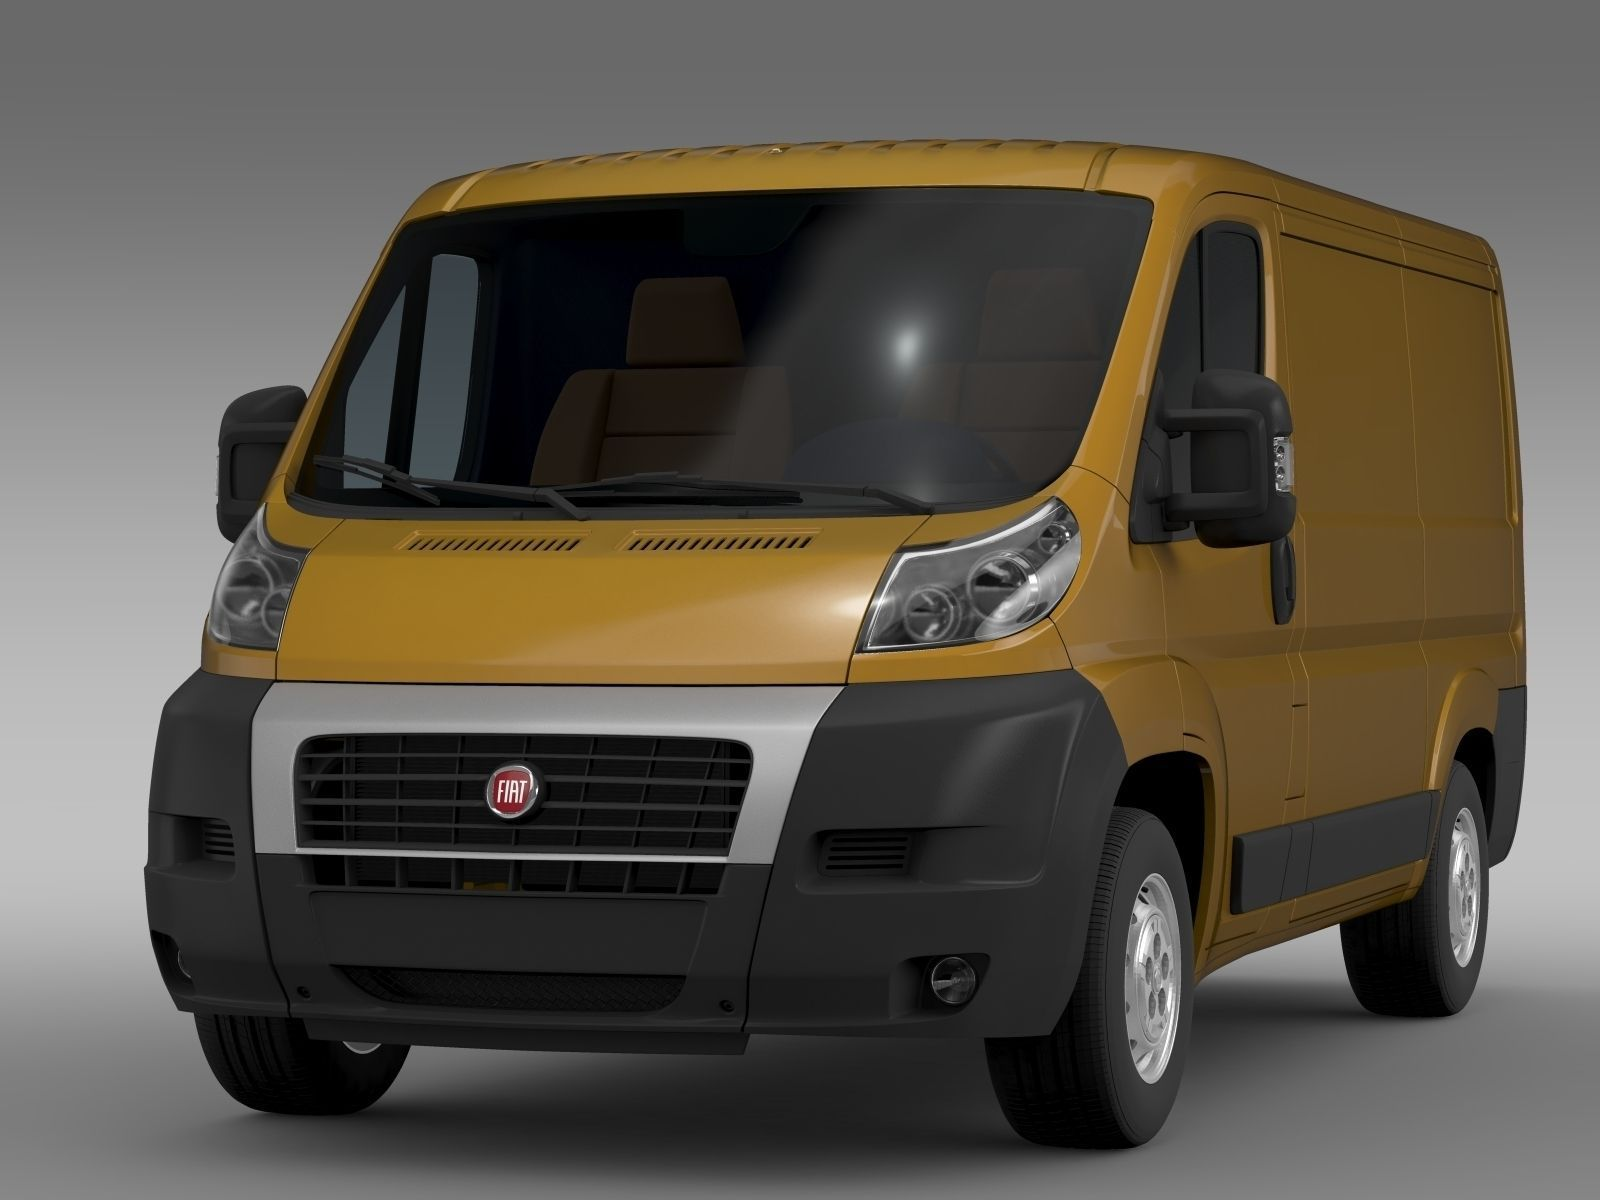 fiat ducato van l1h1 2006 2014 3d model max obj 3ds fbx c4d lwo lw lws. Black Bedroom Furniture Sets. Home Design Ideas